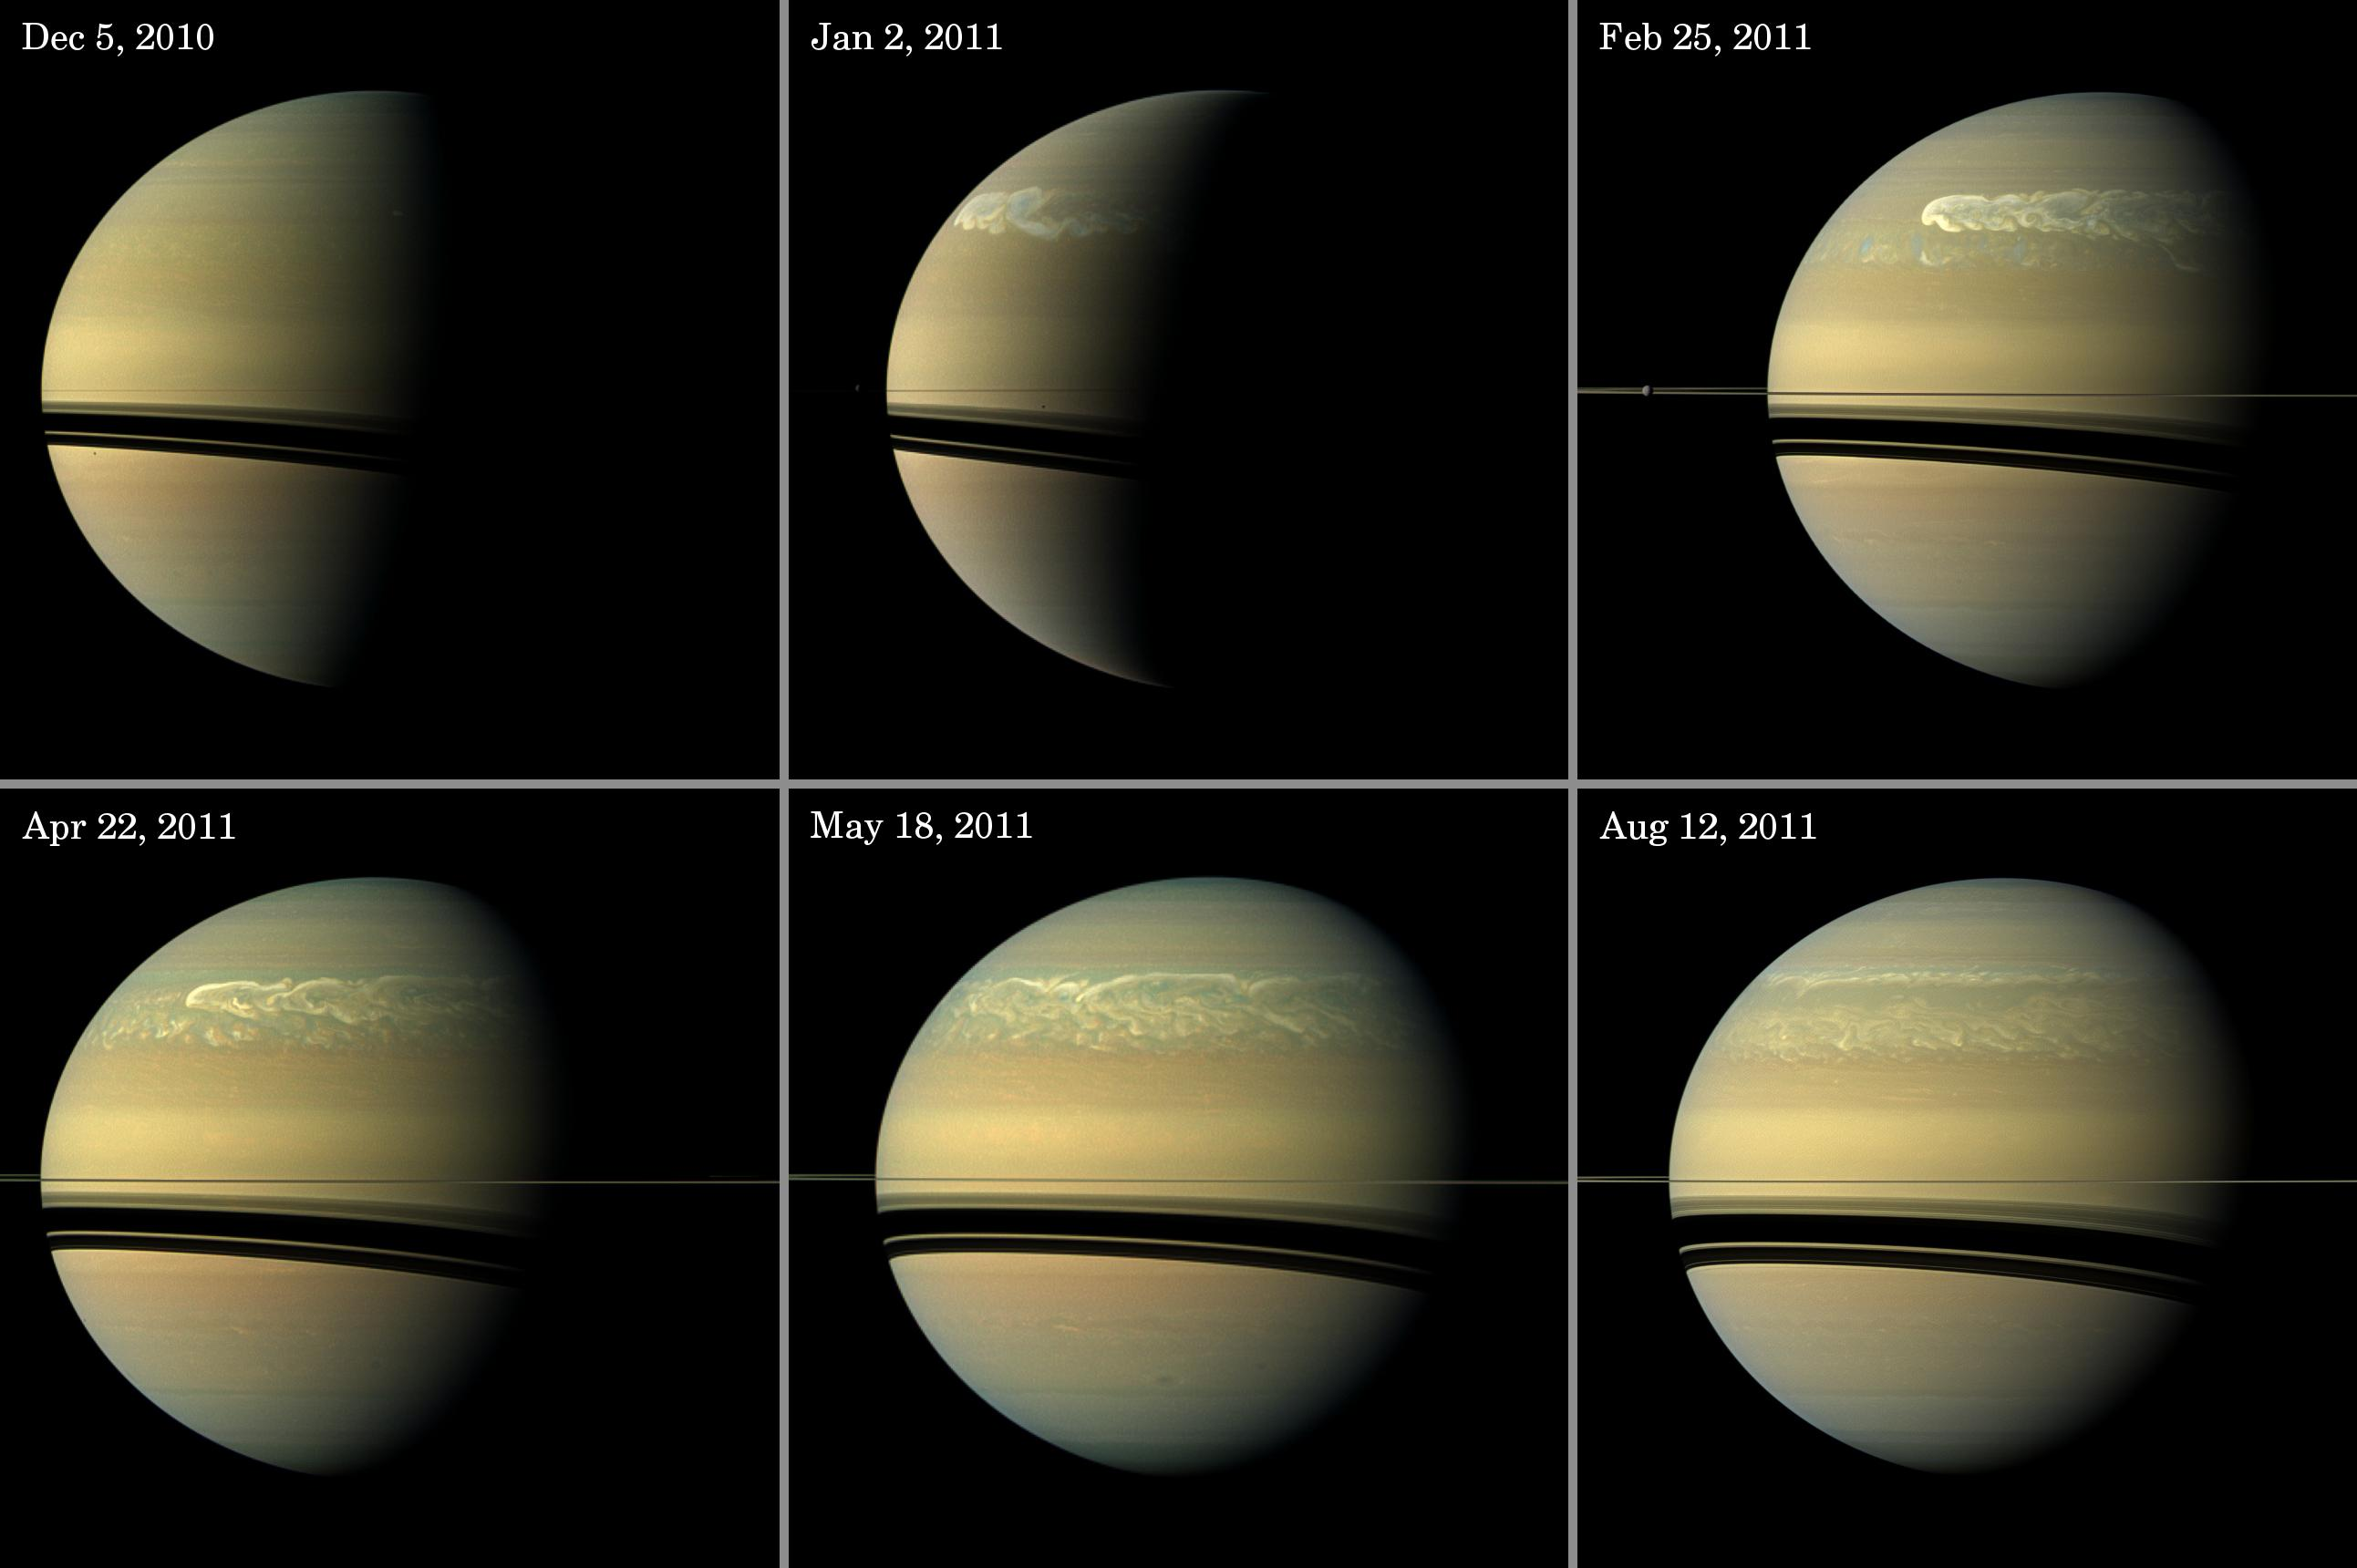 ESA Science & Technology: Saturn's giant storm reveals the